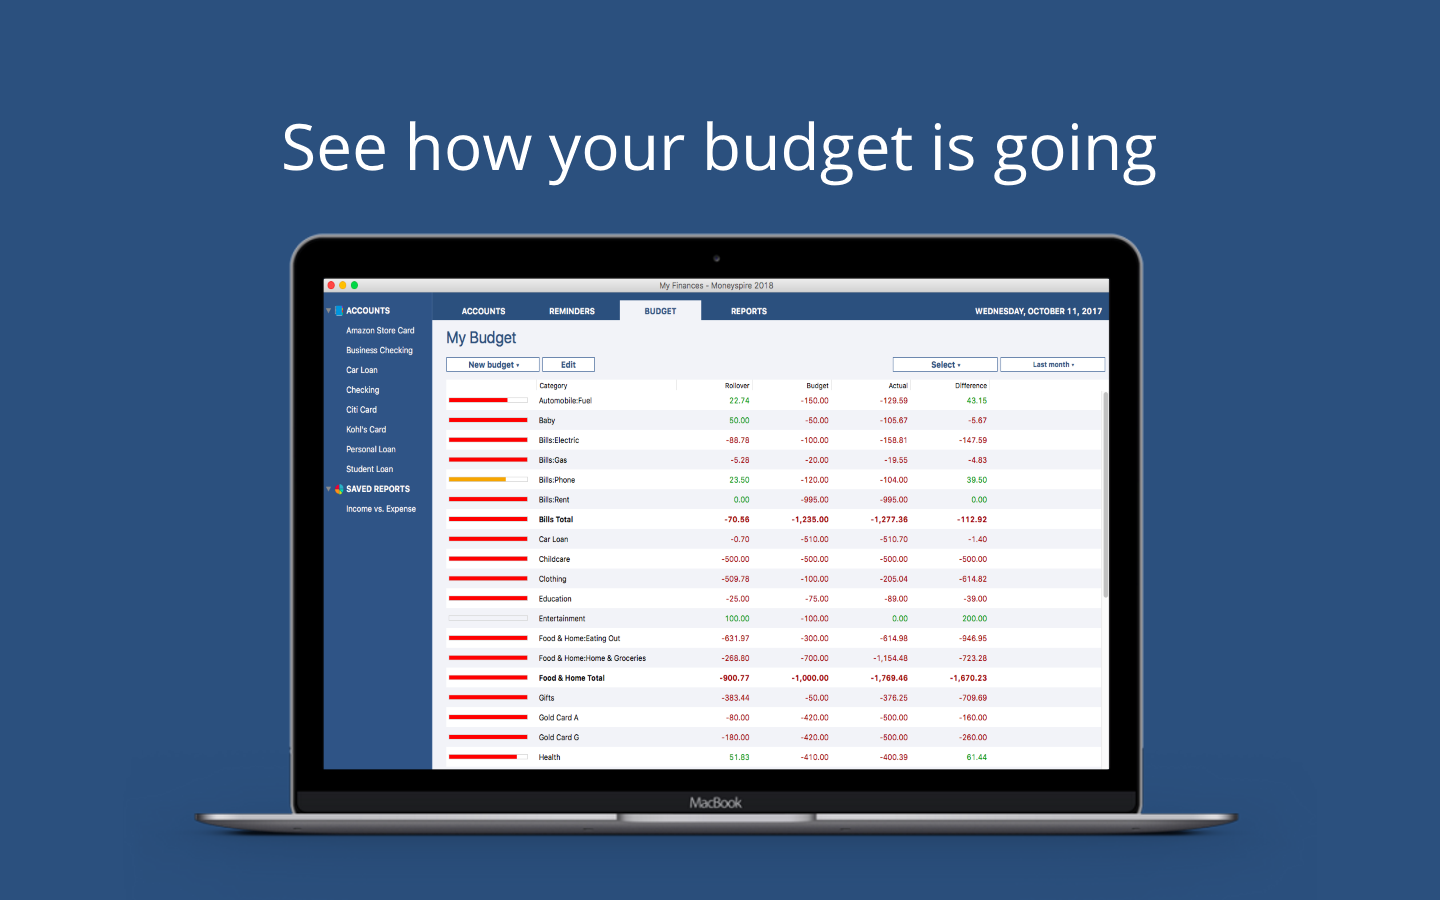 Moneyspire 2018, Business & Finance Software Screenshot